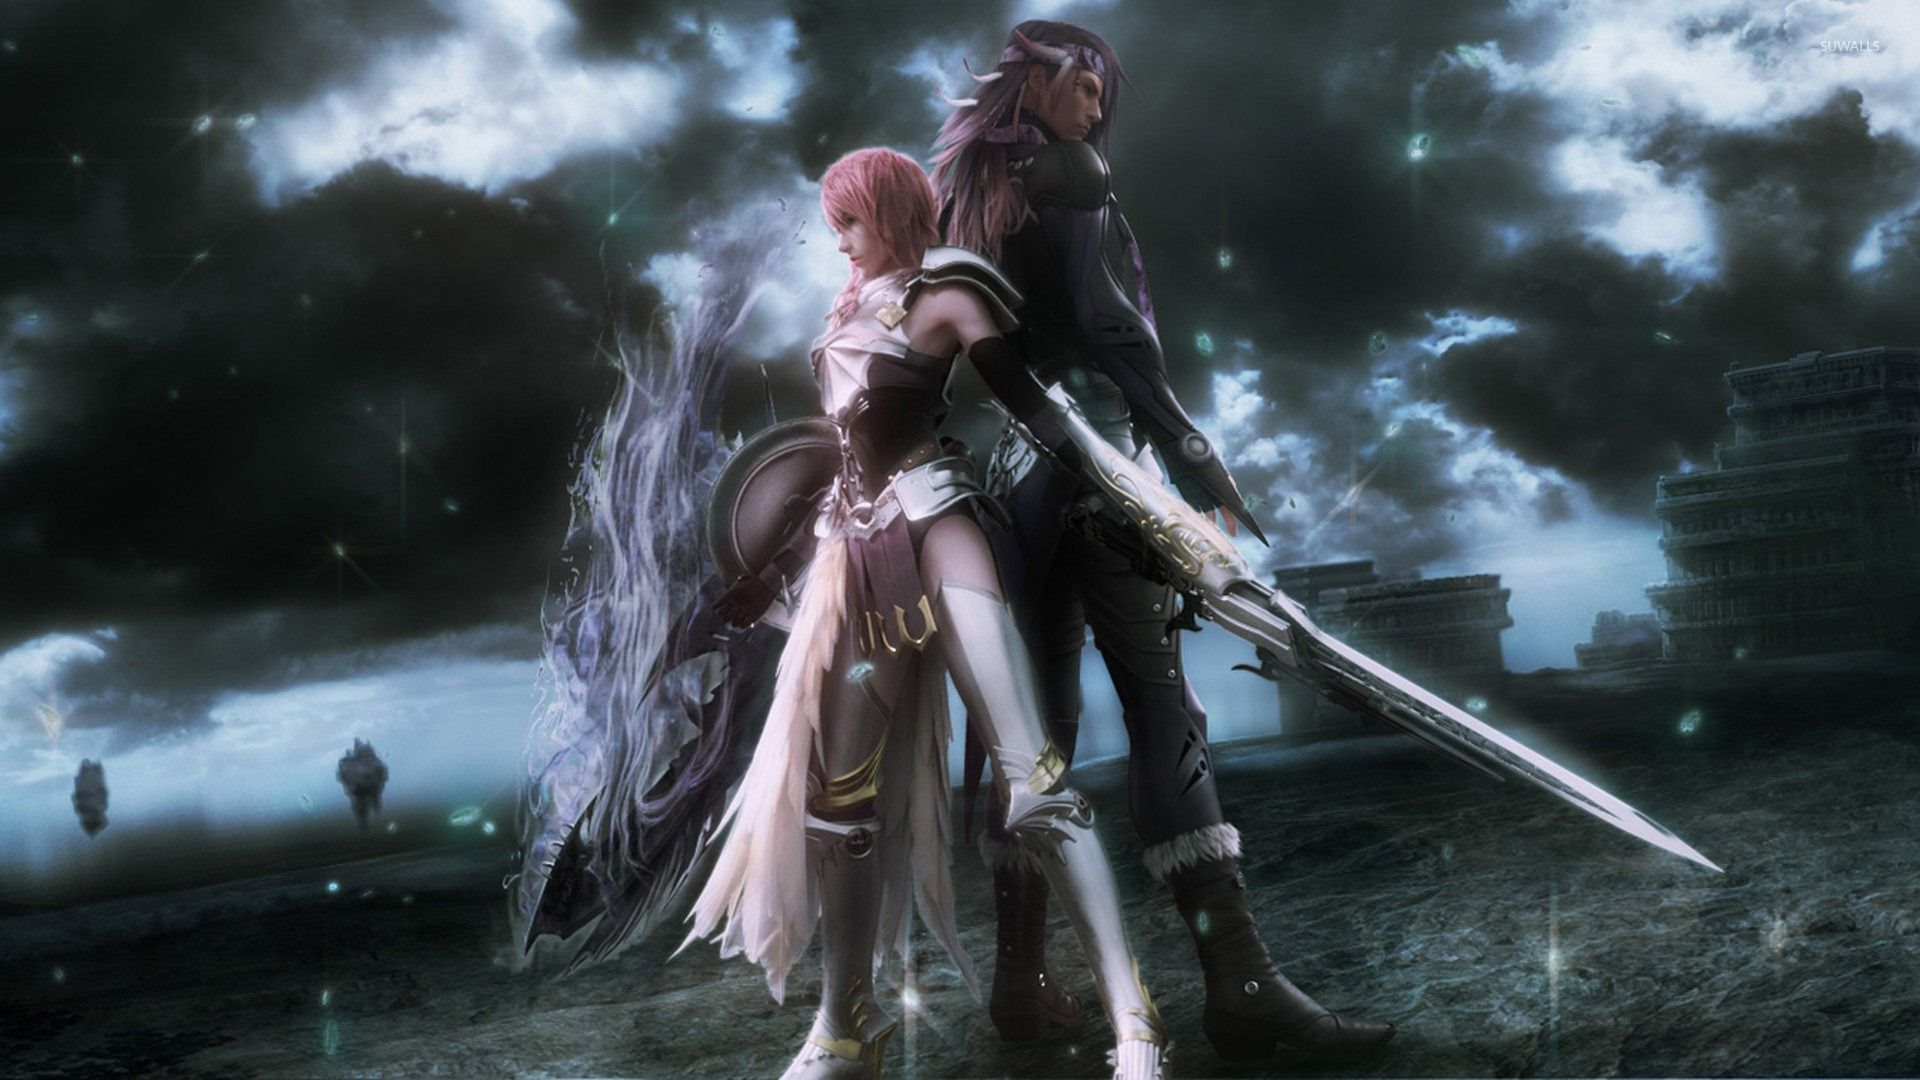 Lightning And Caius Final Fantasy Xiii 2 Wallpaper Game